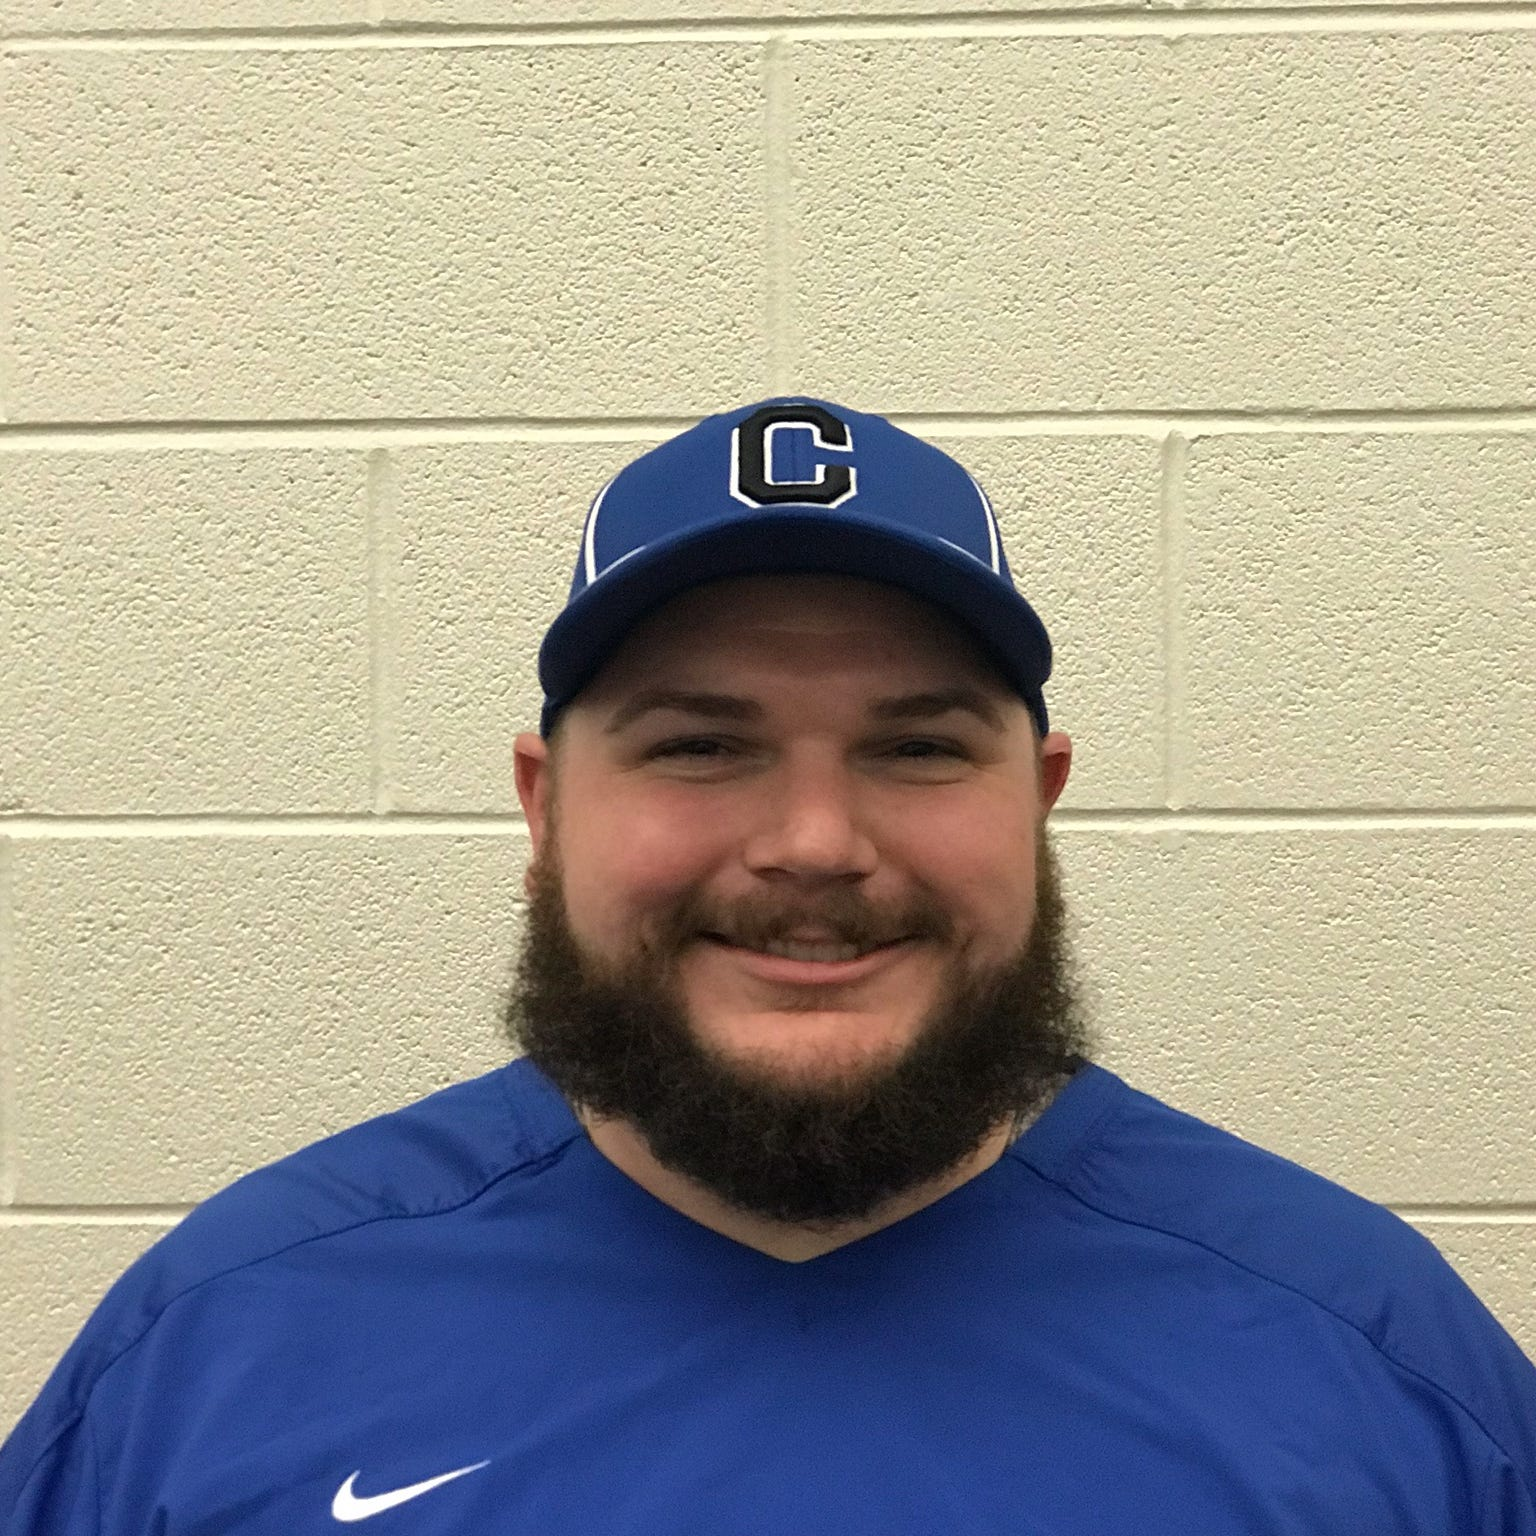 Crestline hires Jonathan King as new head football coach